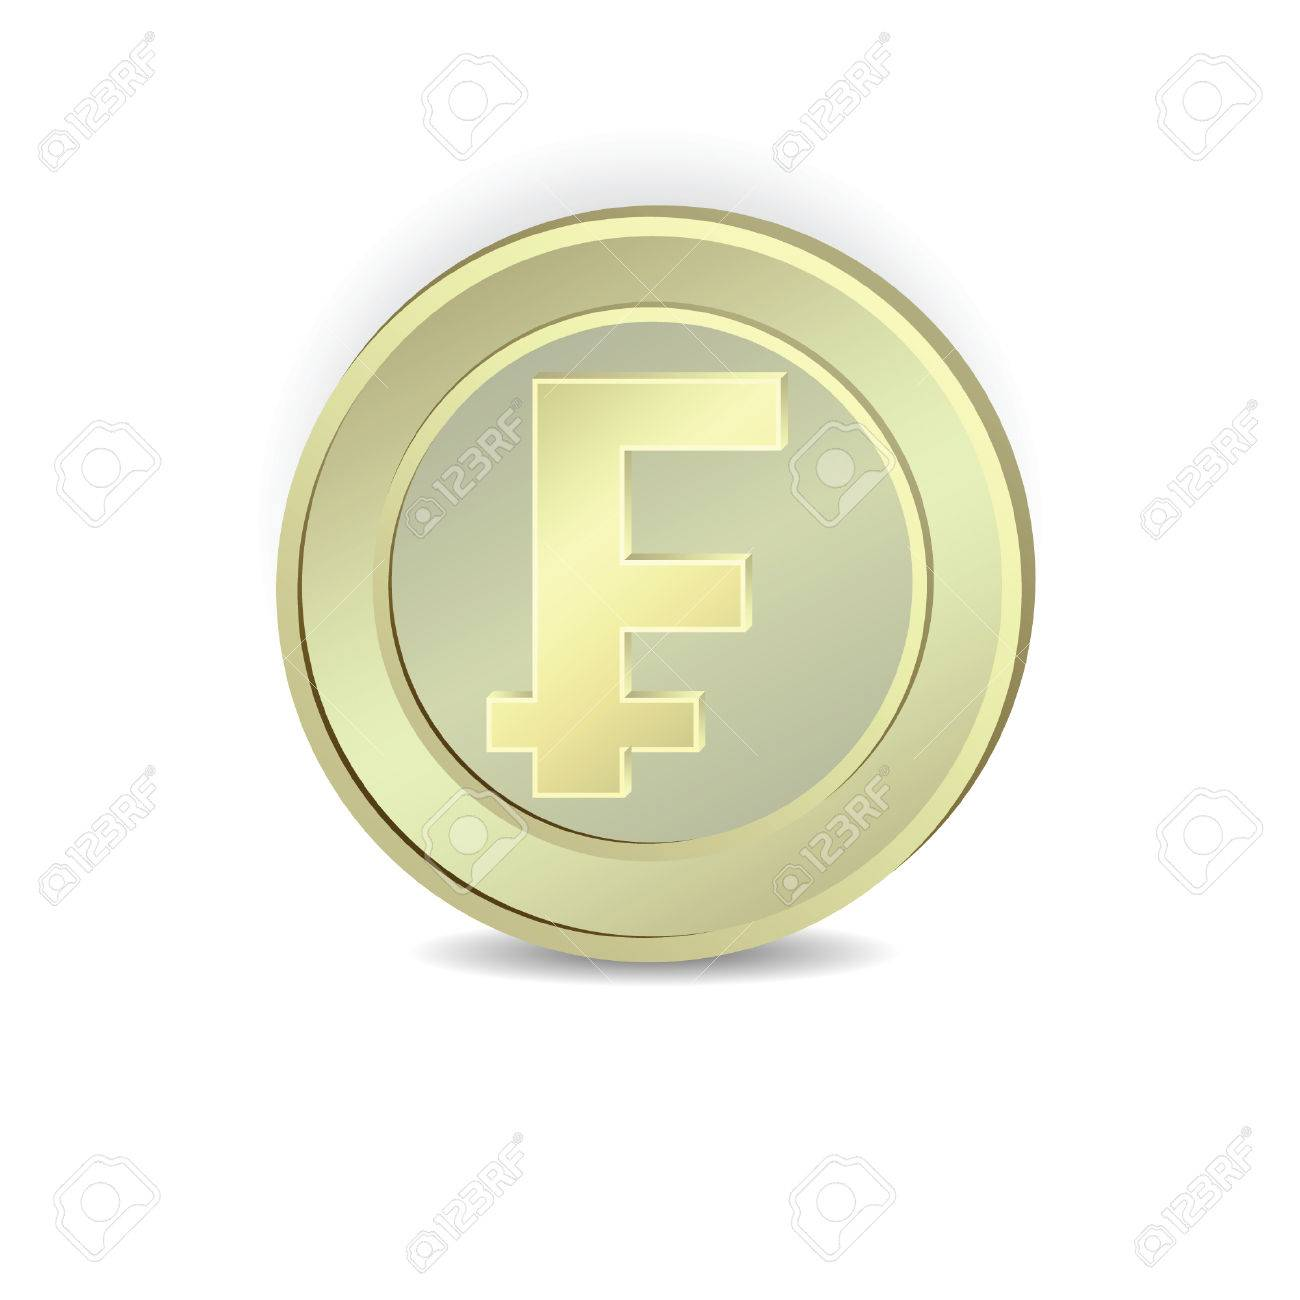 Symbol of france currency choice image symbol and sign ideas the coin with the symbol of the french franc royalty free the coin with the symbol biocorpaavc Gallery